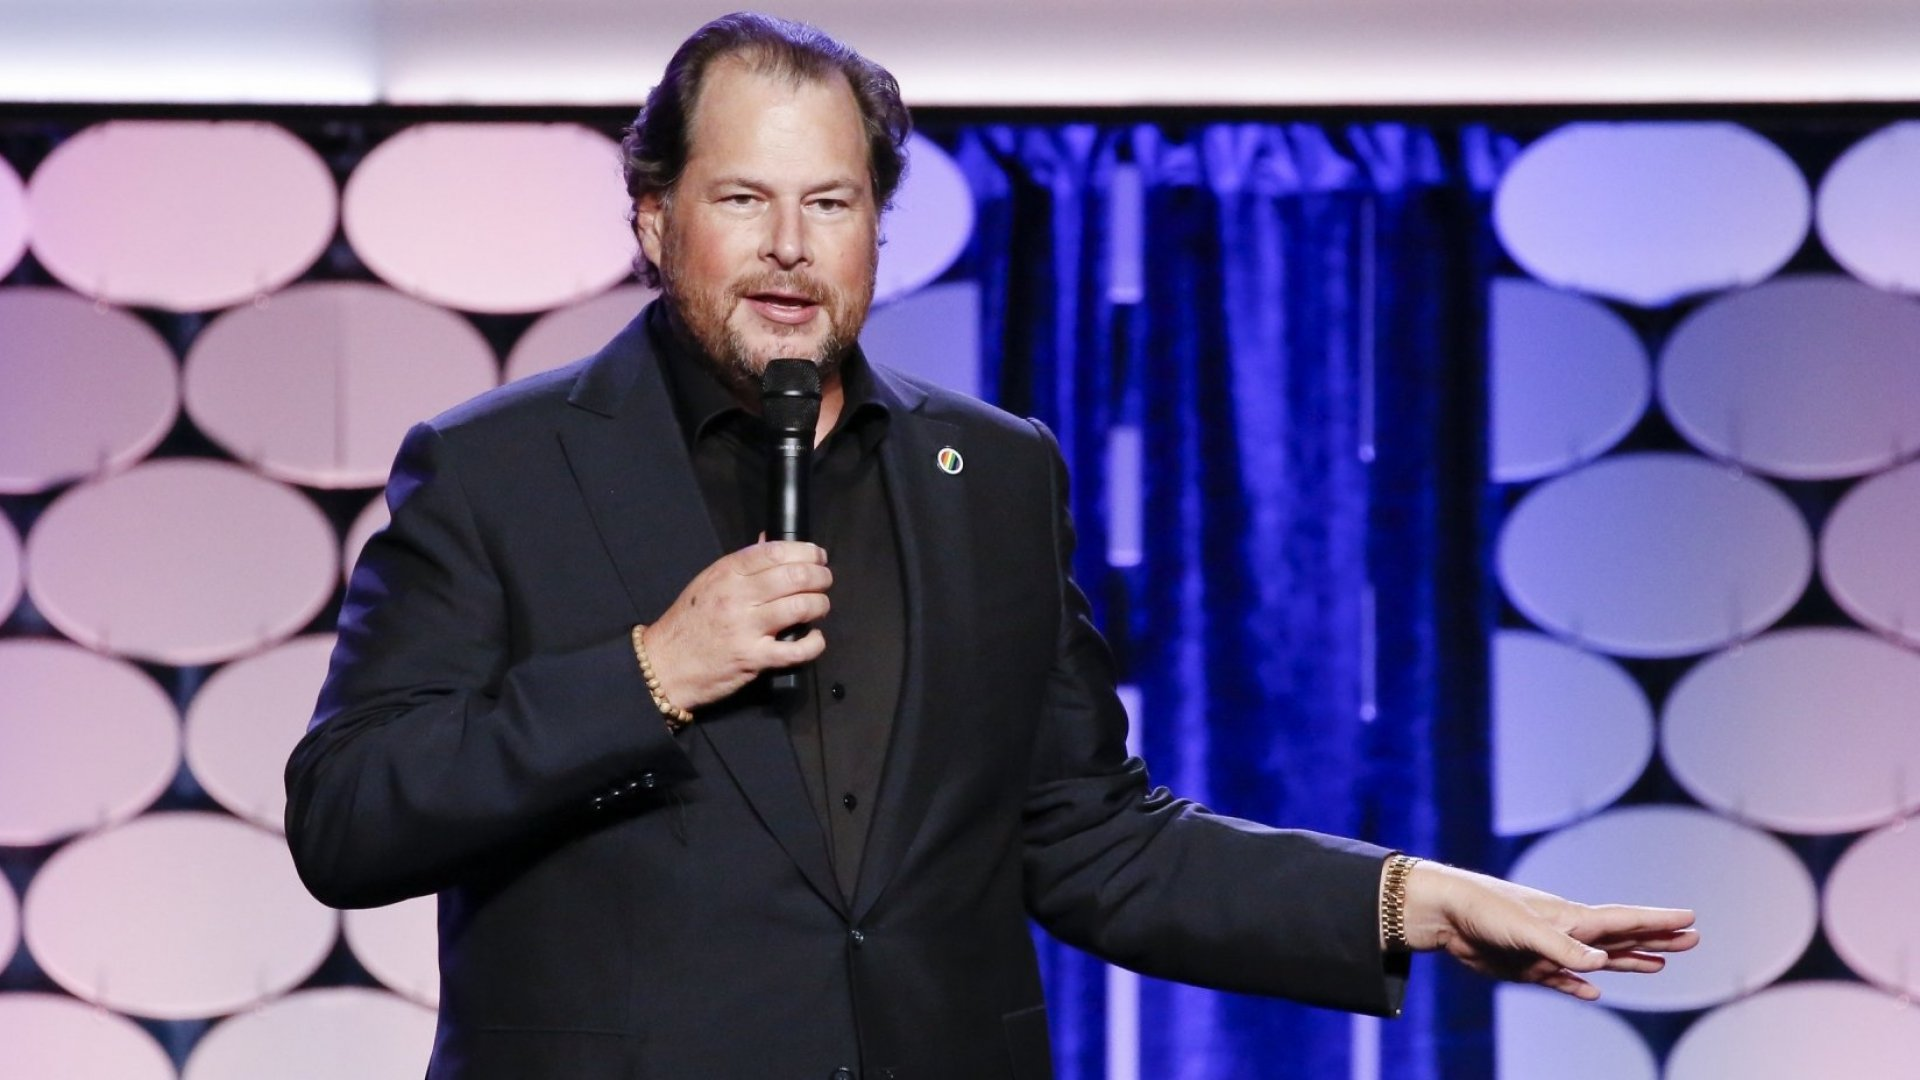 3 Lessons We Can Take From Marc Benioff's Perseverance and Ambition